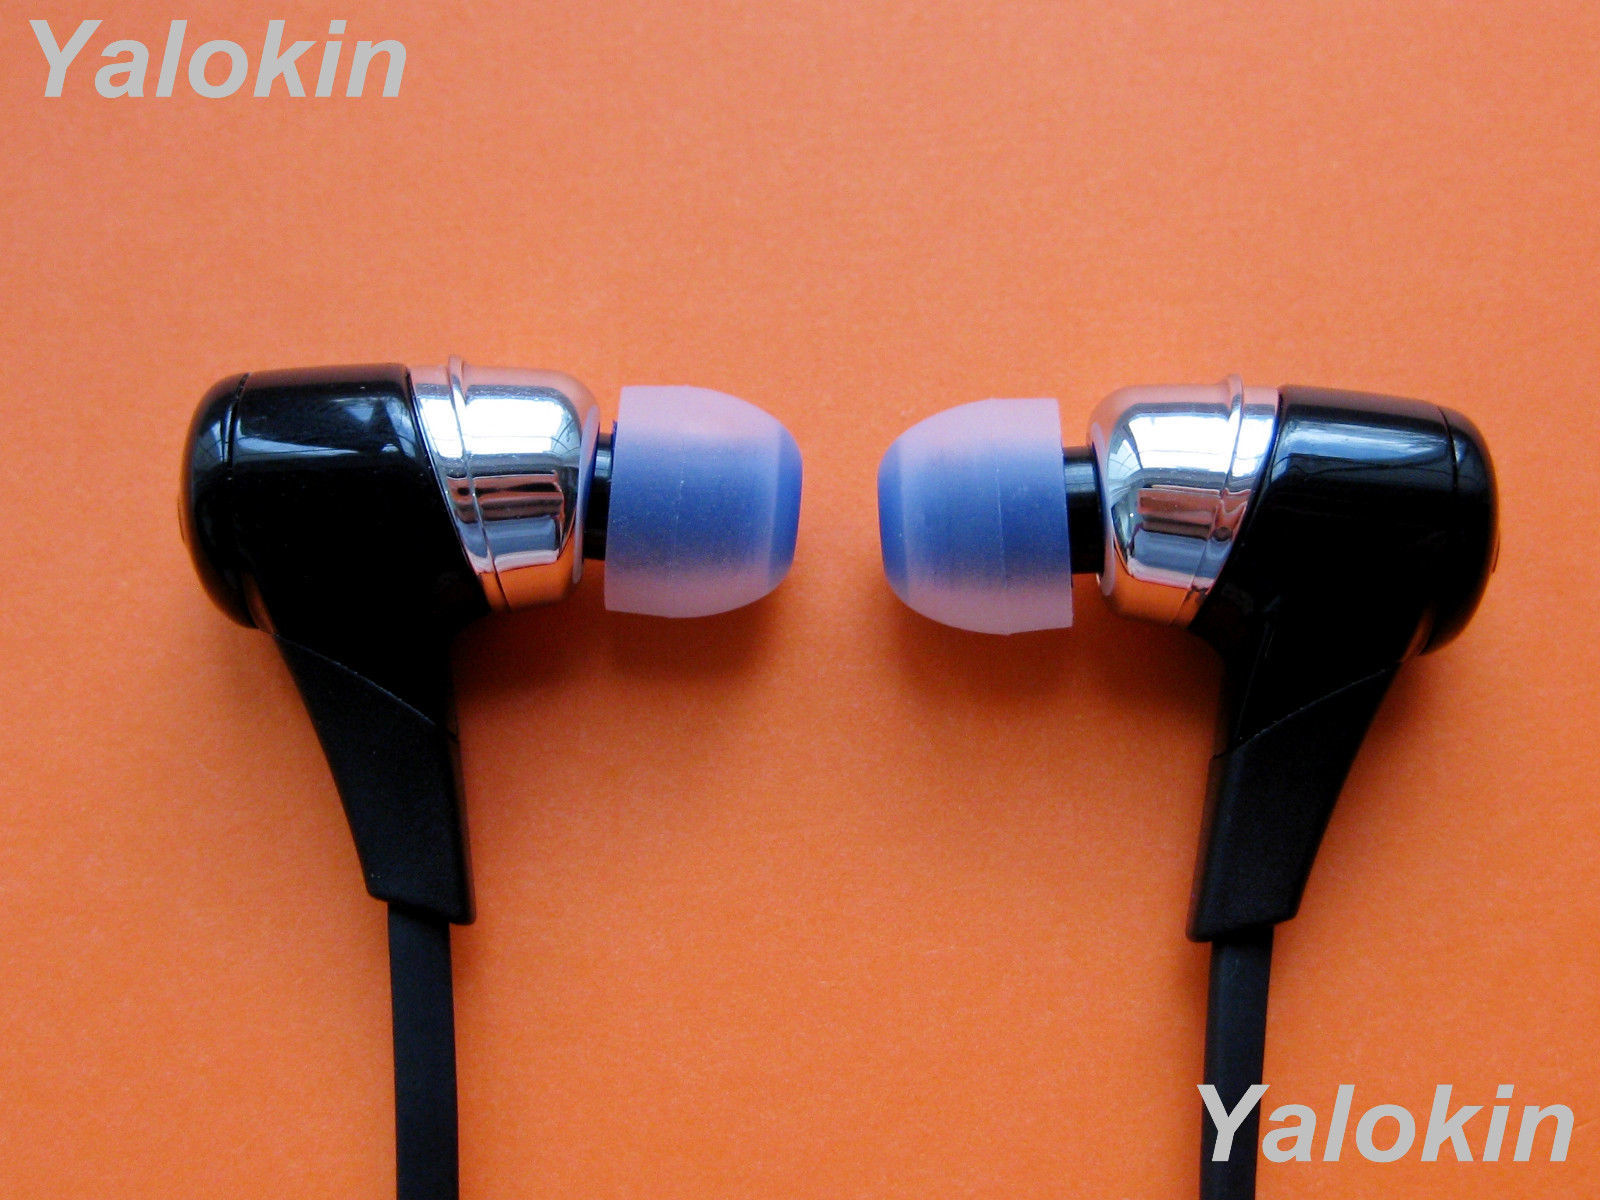 NEW 8pcs Medium Size C-BL Replacement Ear-buds Adapters Gels for Jaybird X3